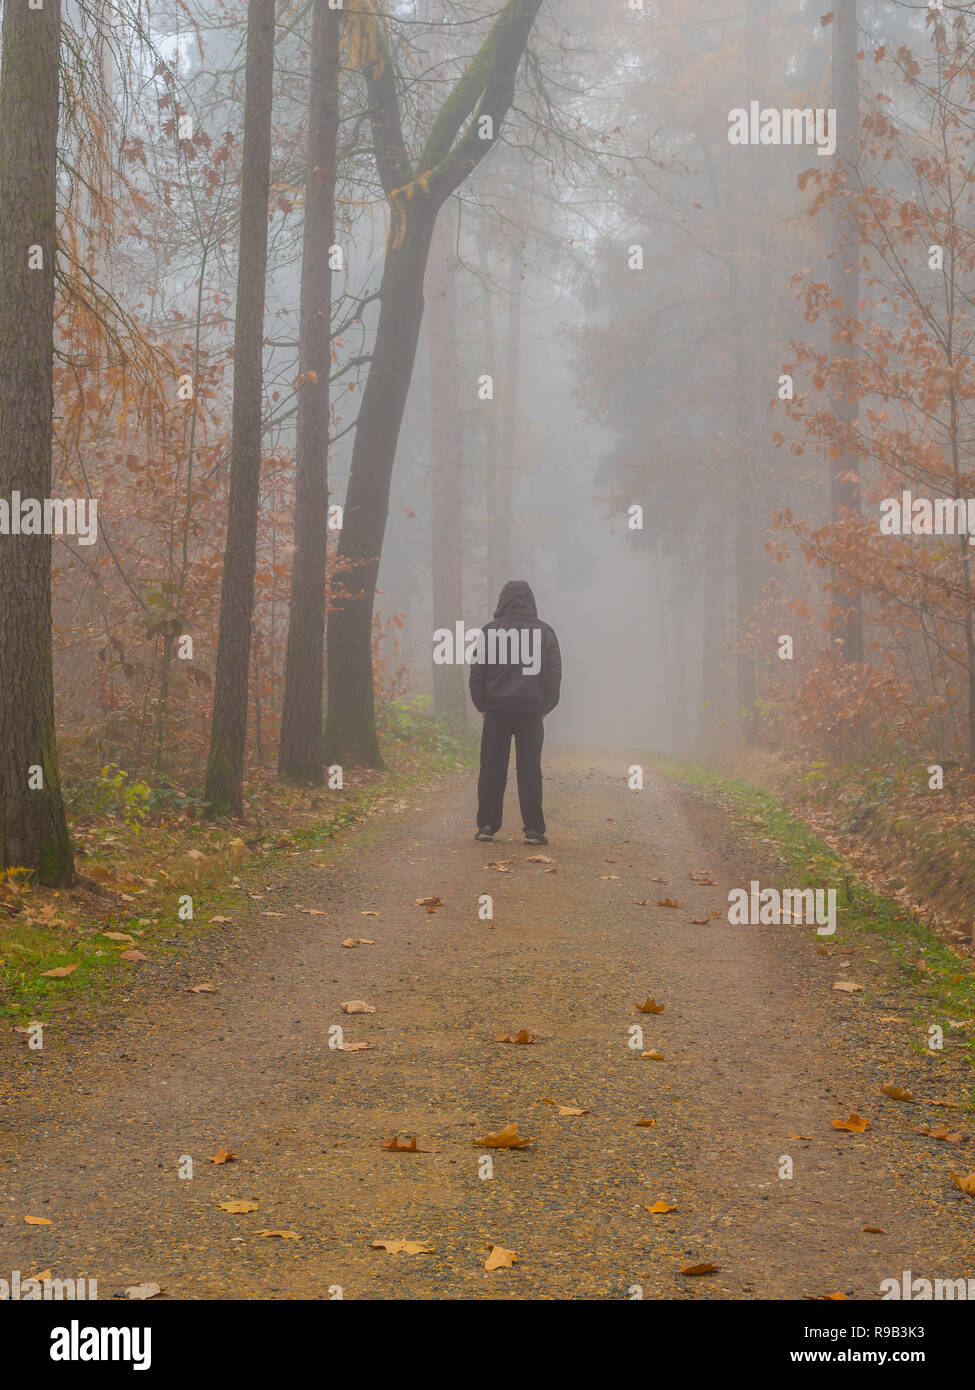 Man in the forest in fog depressions - Stock Image